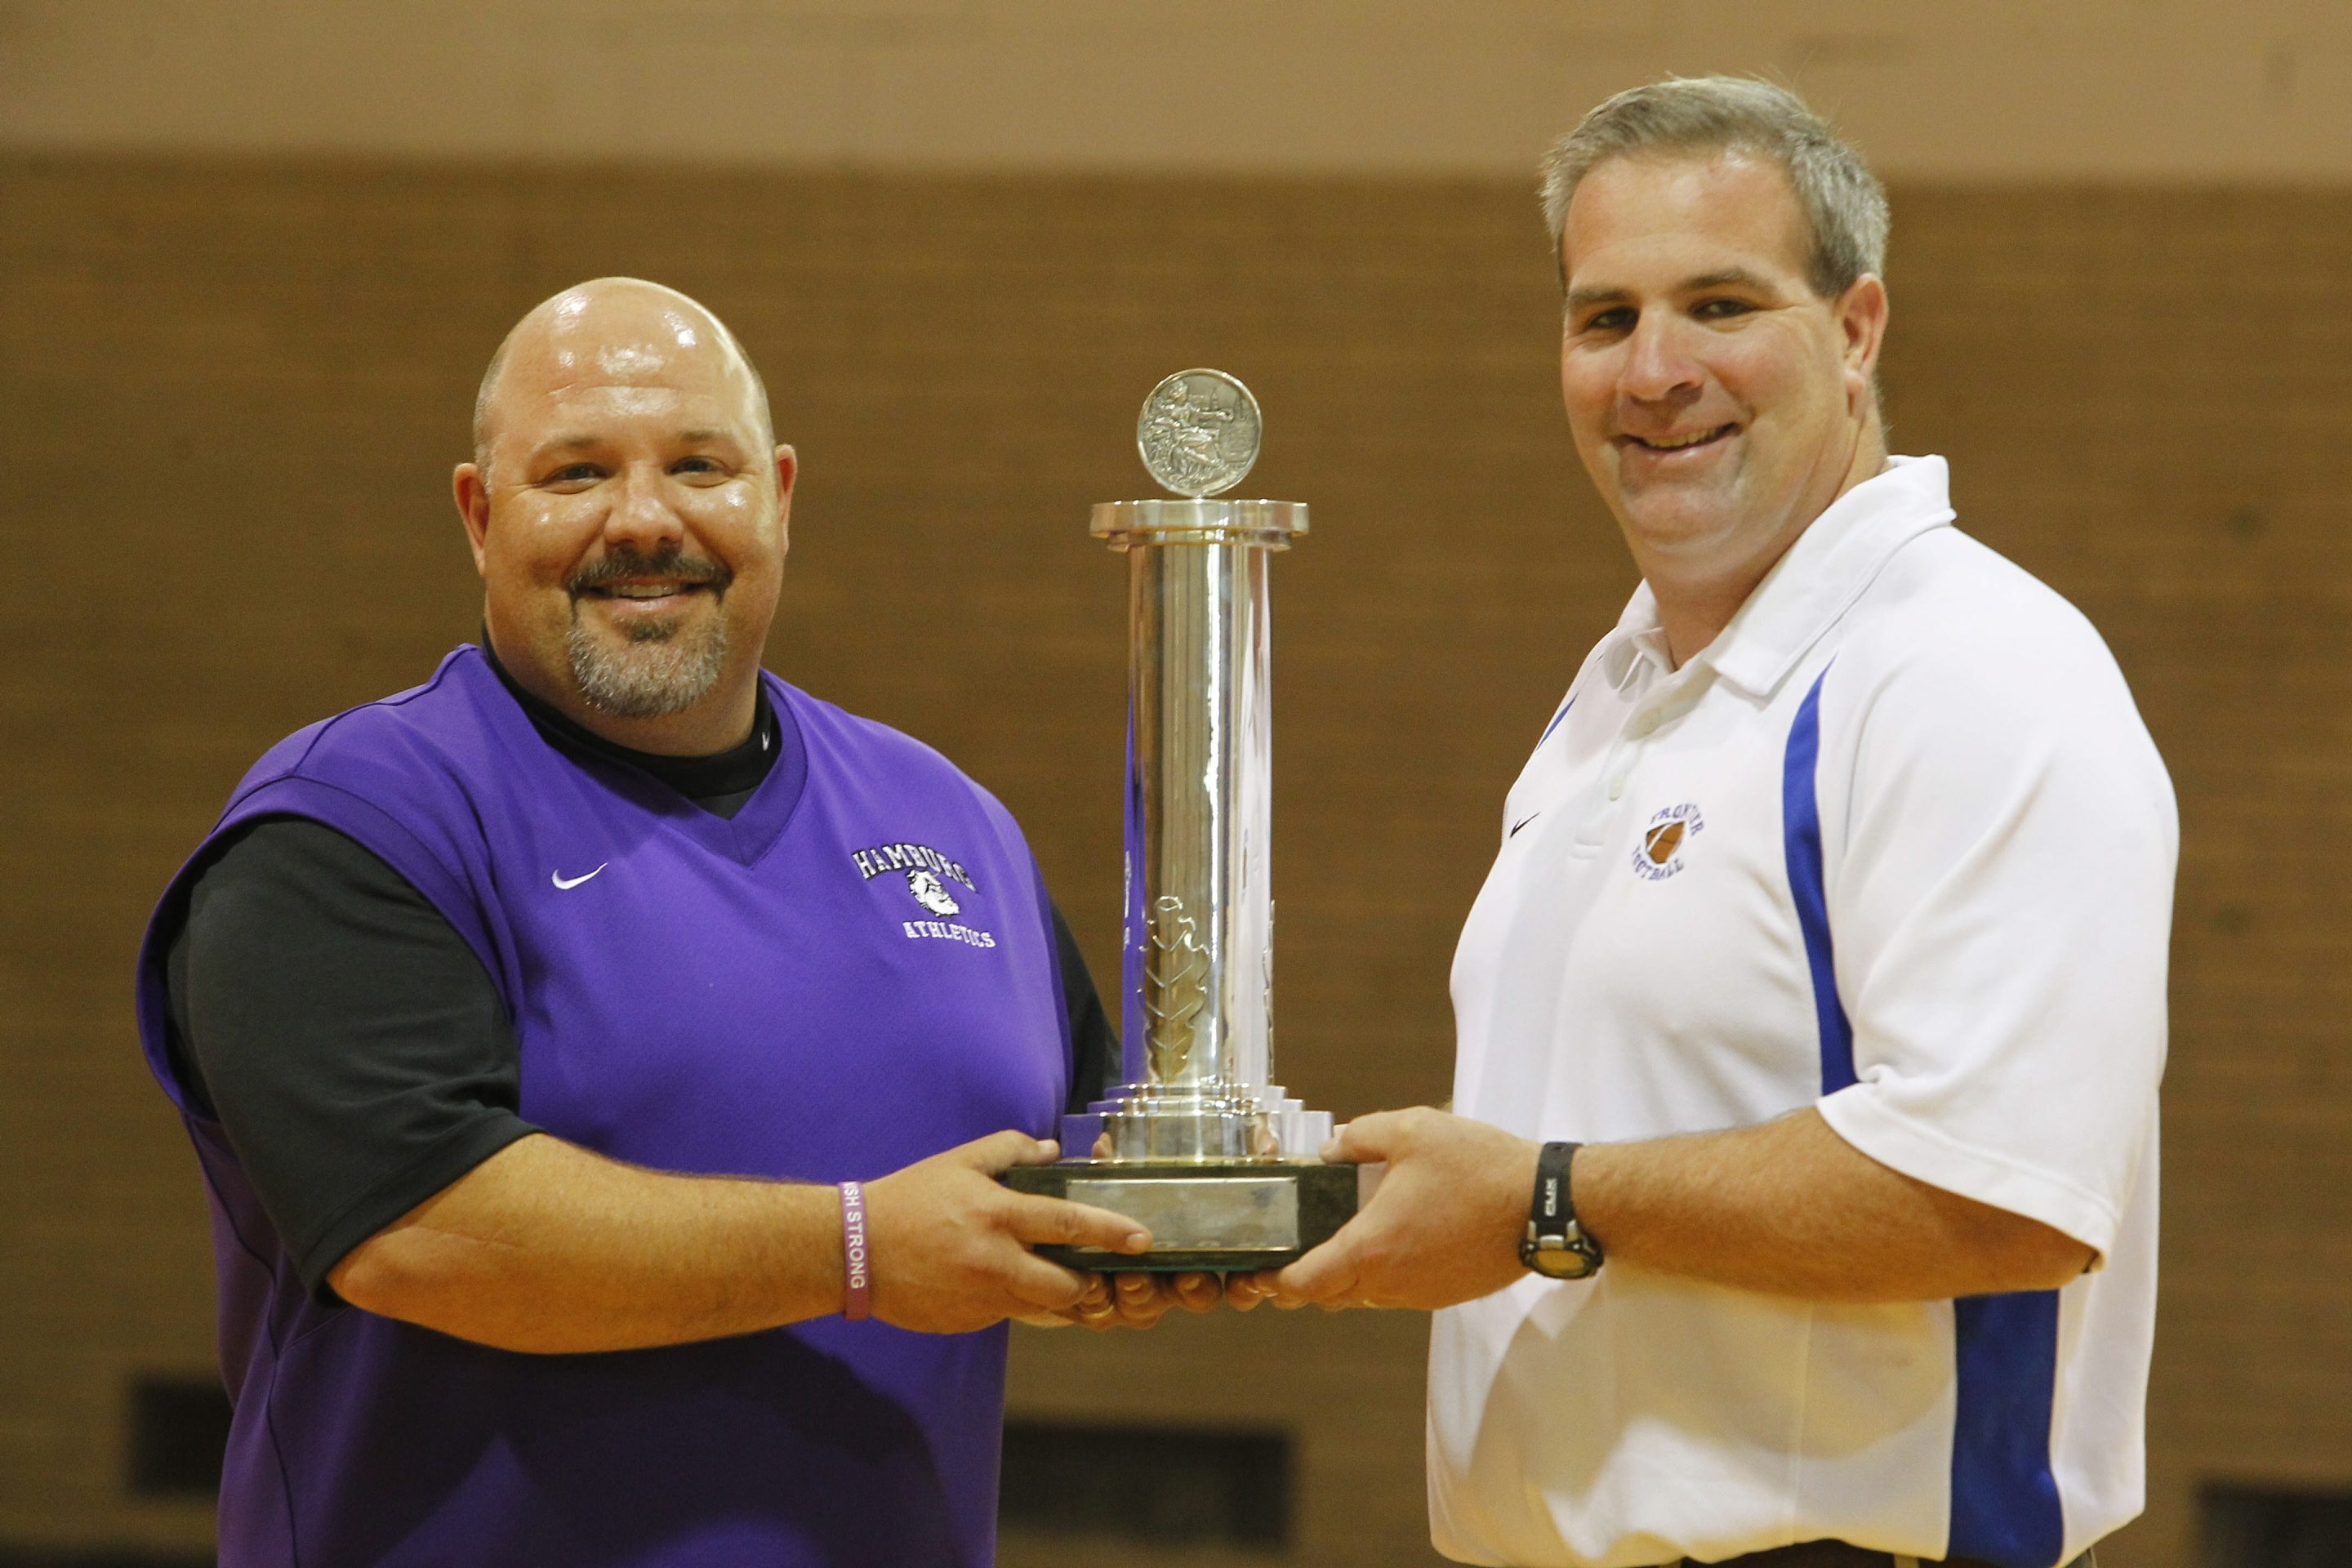 Mark Mulville/Buffalo News    Hamburg's athletic director, Greg Witman, left, and Frontier's athletic director, Rich Gray, hold the Challenge Trophy, which was used for years in a good-natured rivalry between the two school districts.